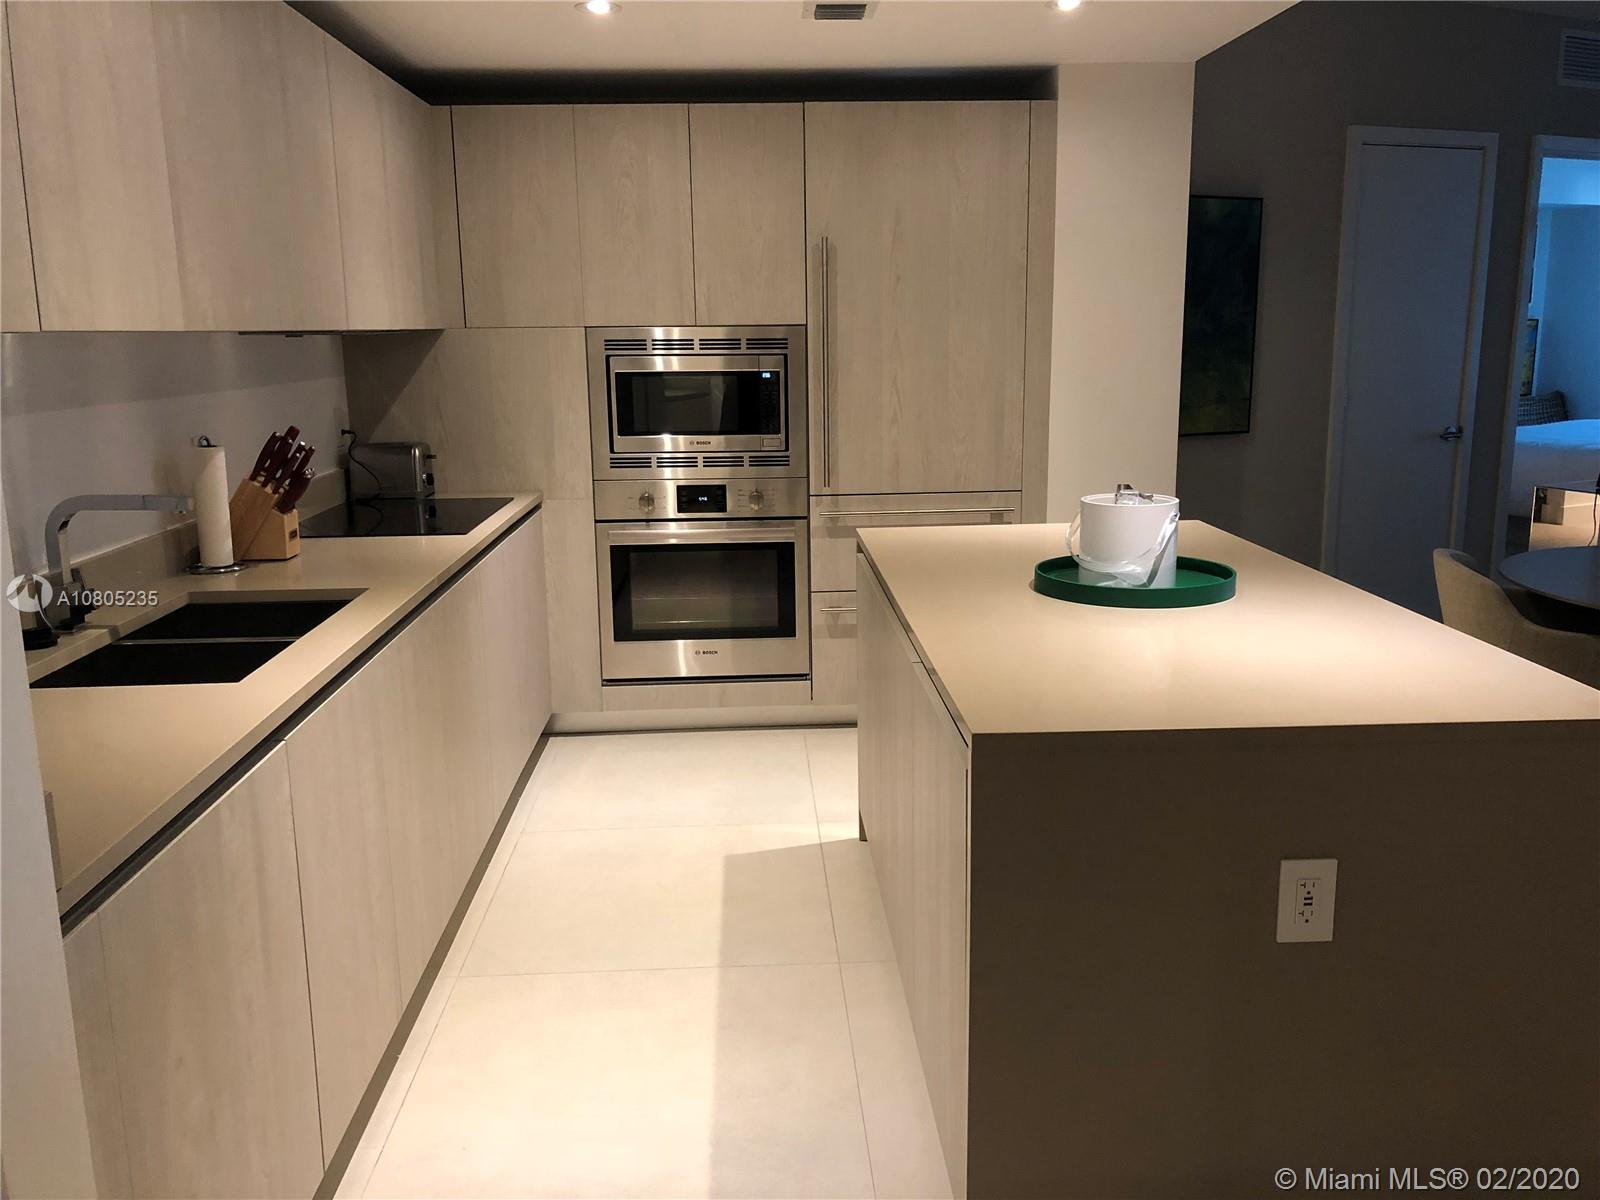 4111 S Ocean Dr # 1005, Hollywood, Florida 33019, 2 Bedrooms Bedrooms, ,2 BathroomsBathrooms,Residential,For Sale,4111 S Ocean Dr # 1005,A10805235